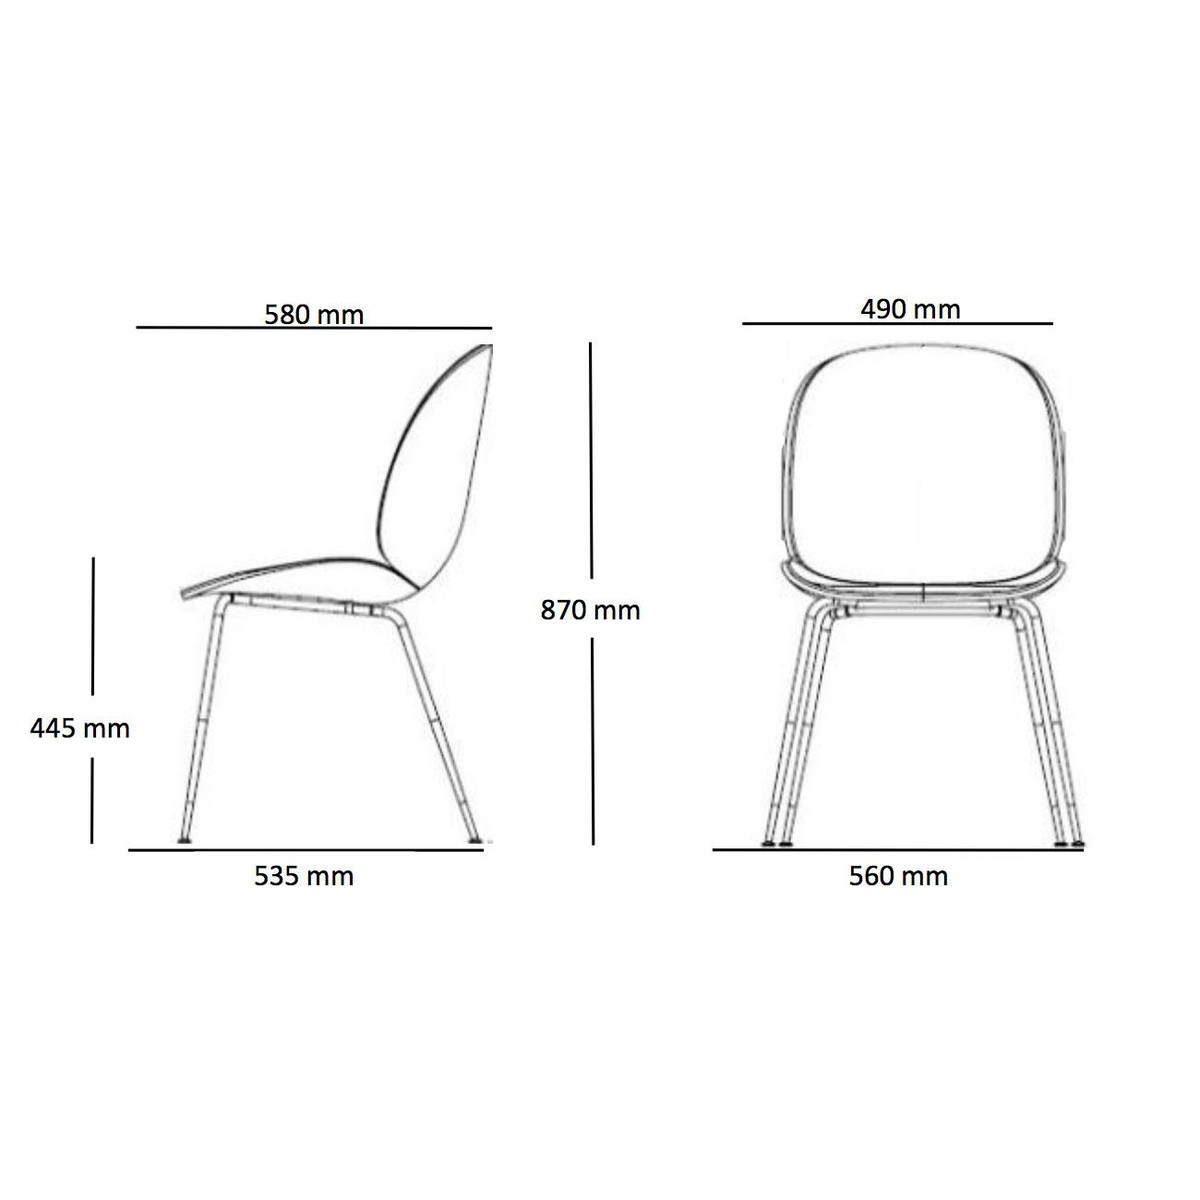 Beetle Dining Chair Brass Base Gubi AmbienteDirectcom : Strichzeichnung1200x1200 ID1554218 a1feb84df1bb51b099266ffdbbeda7db from www.ambientedirect.com size 1200 x 1200 jpeg 64kB